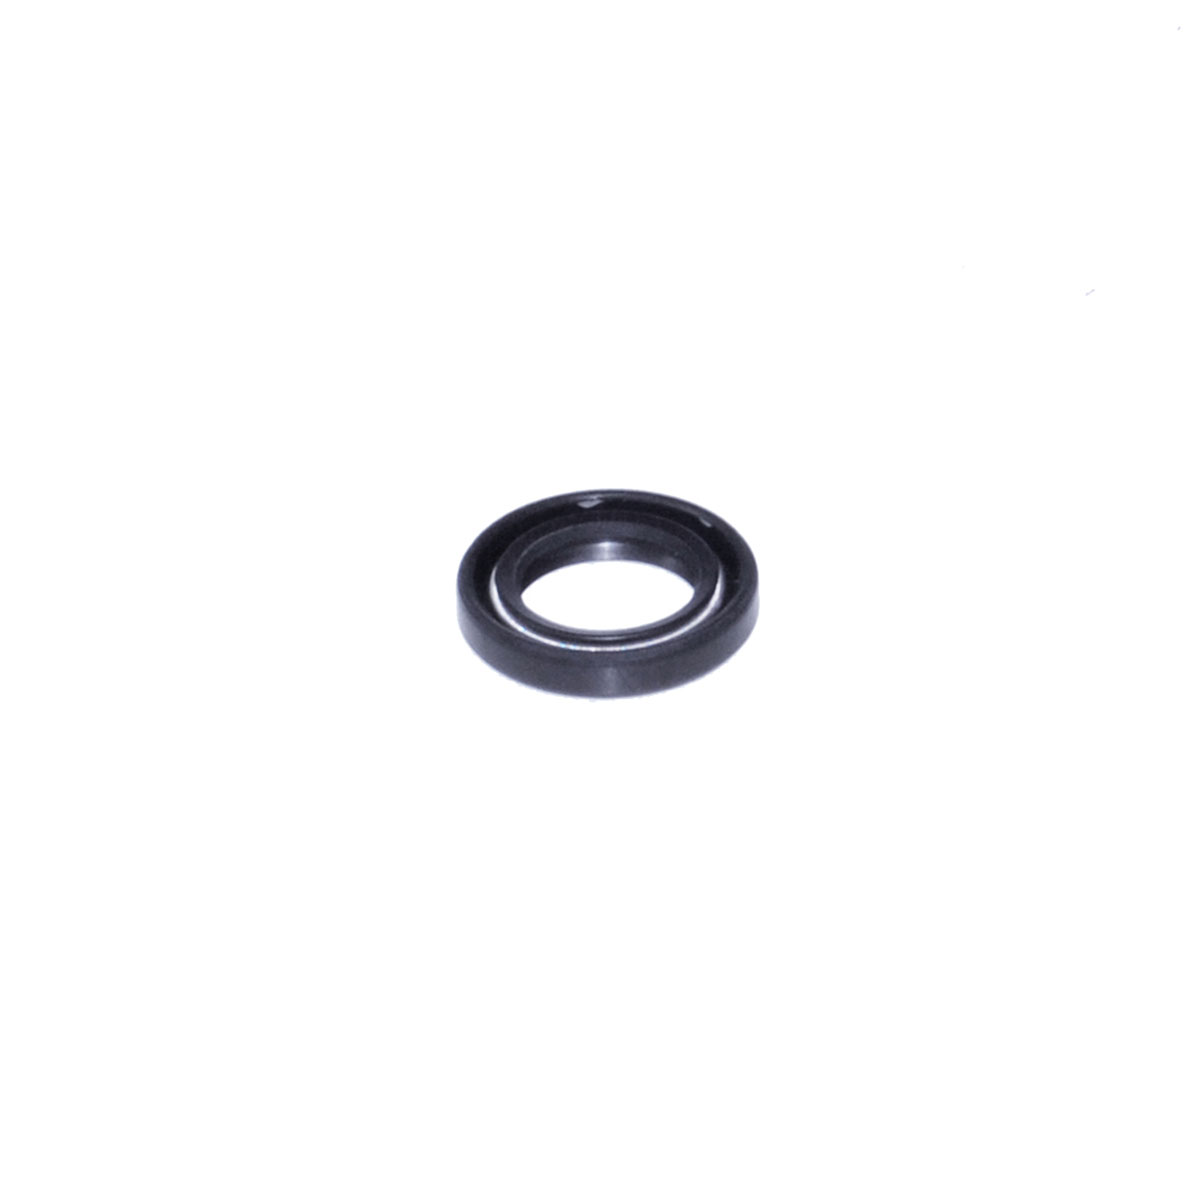 Torqeedo Shaft Seal 14x22x4 NBR 72